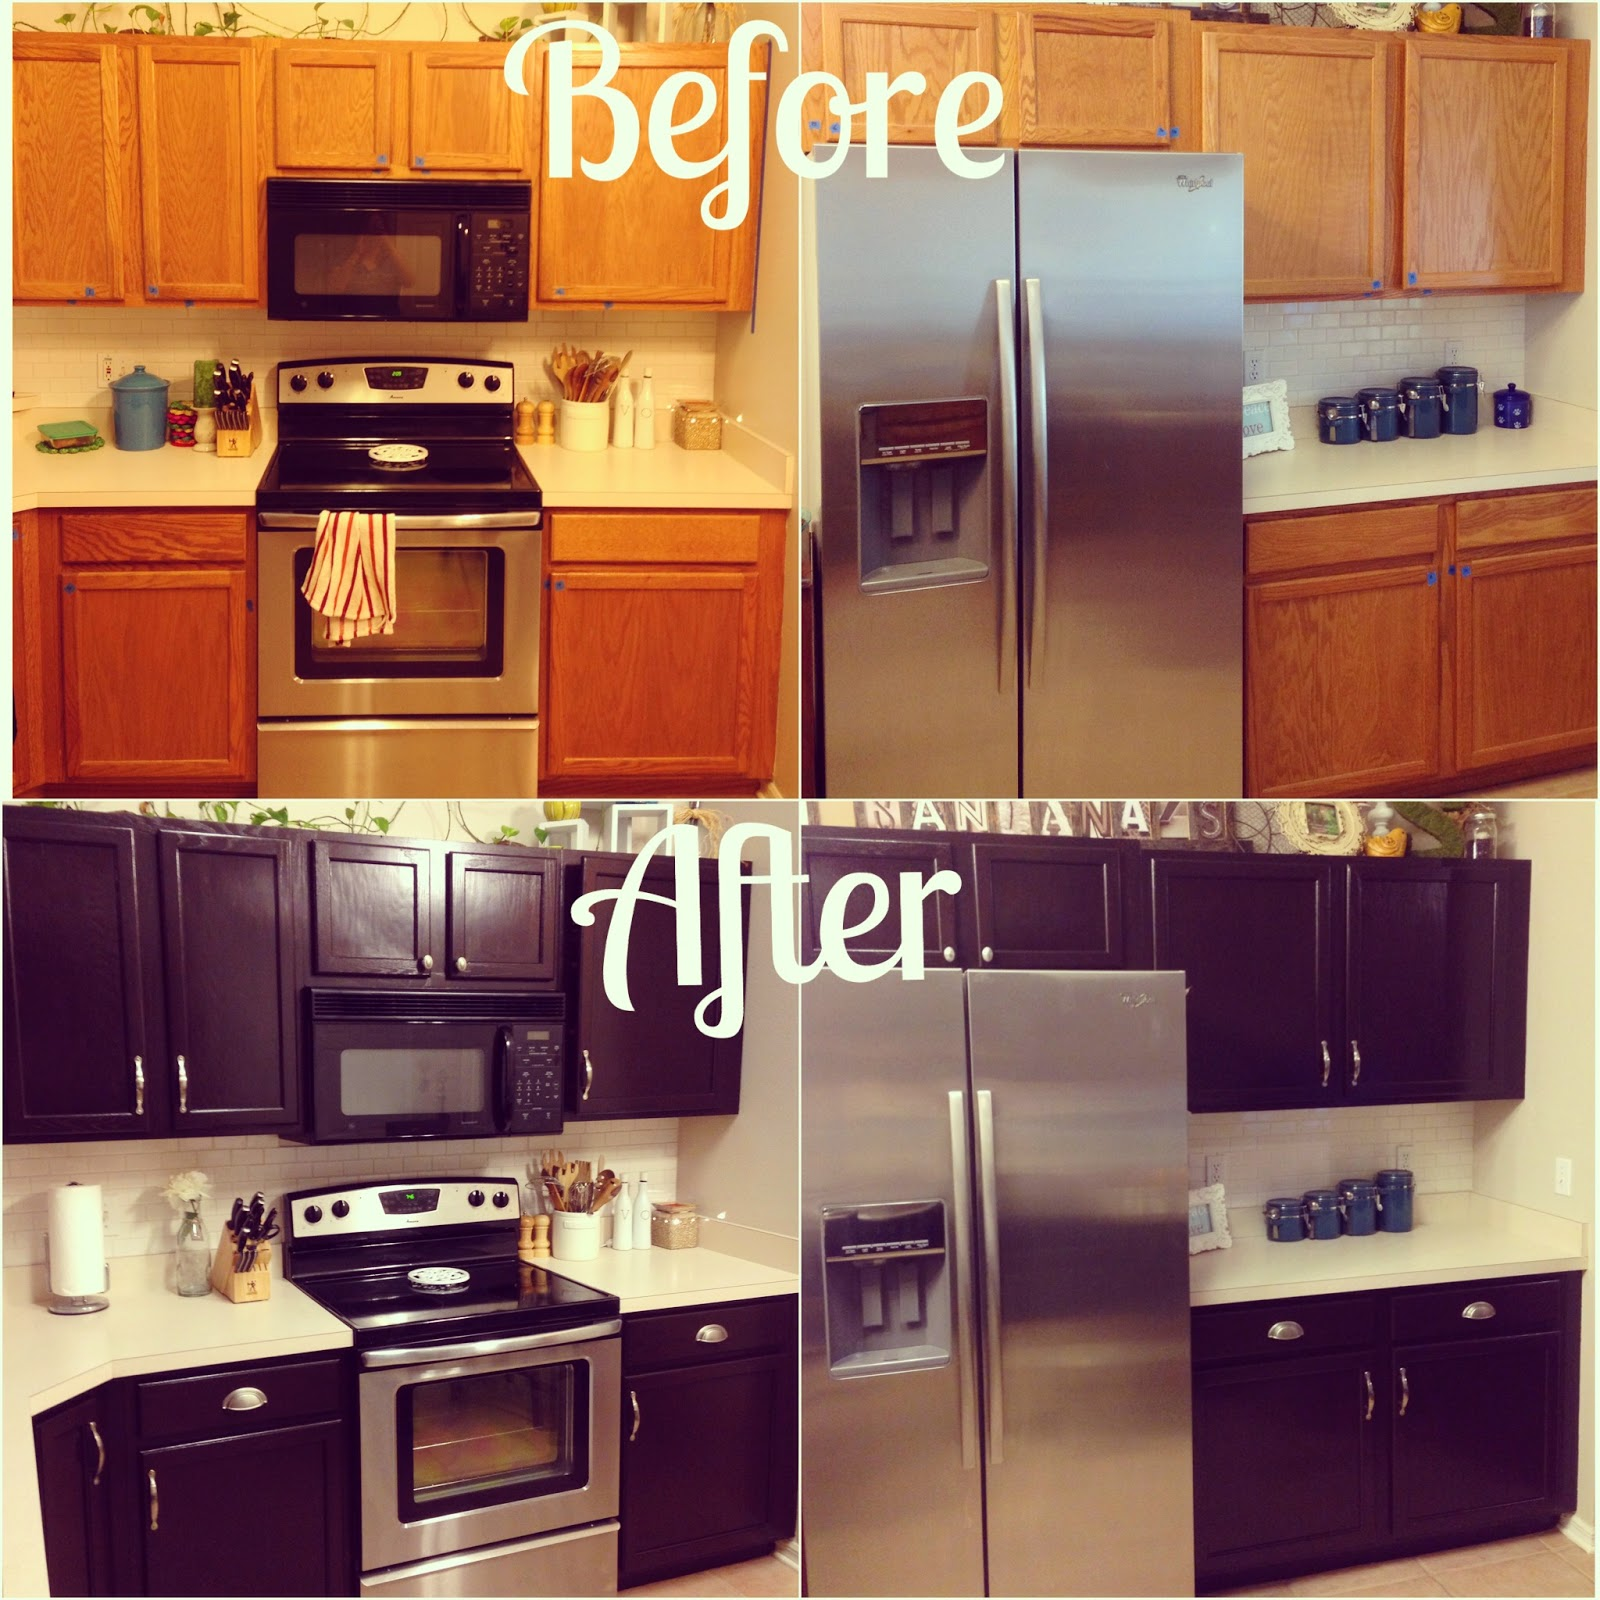 Facelift For Kitchen Cabinets: Kitchen Makeover For $100!